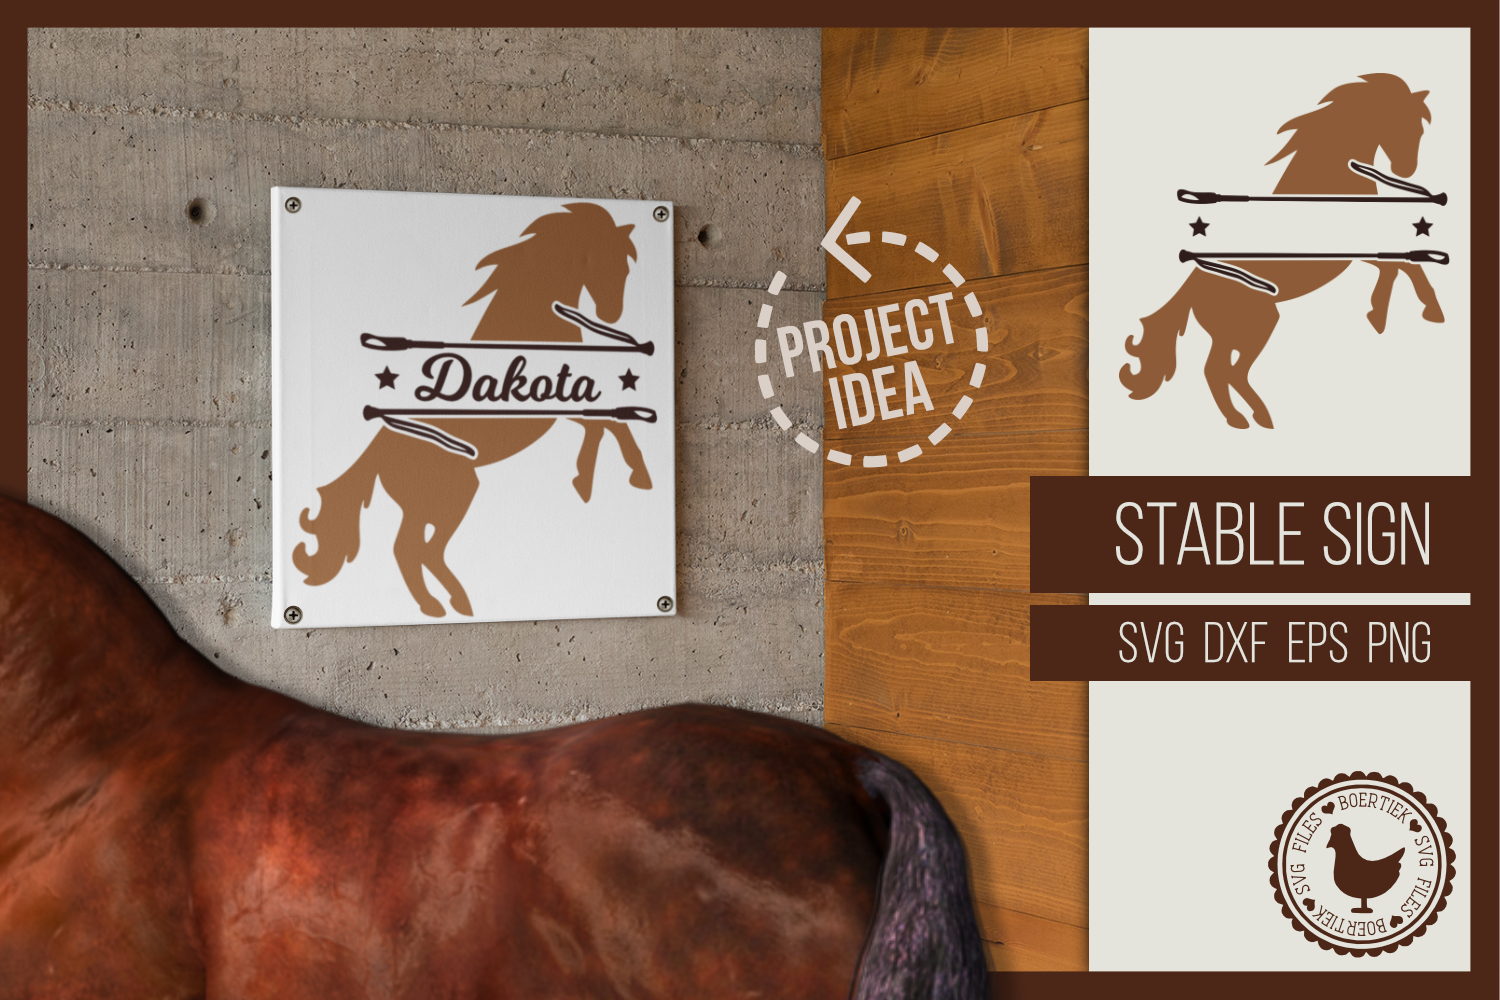 Stable sign, enter the name of your horse, SVG cutting file example image 1